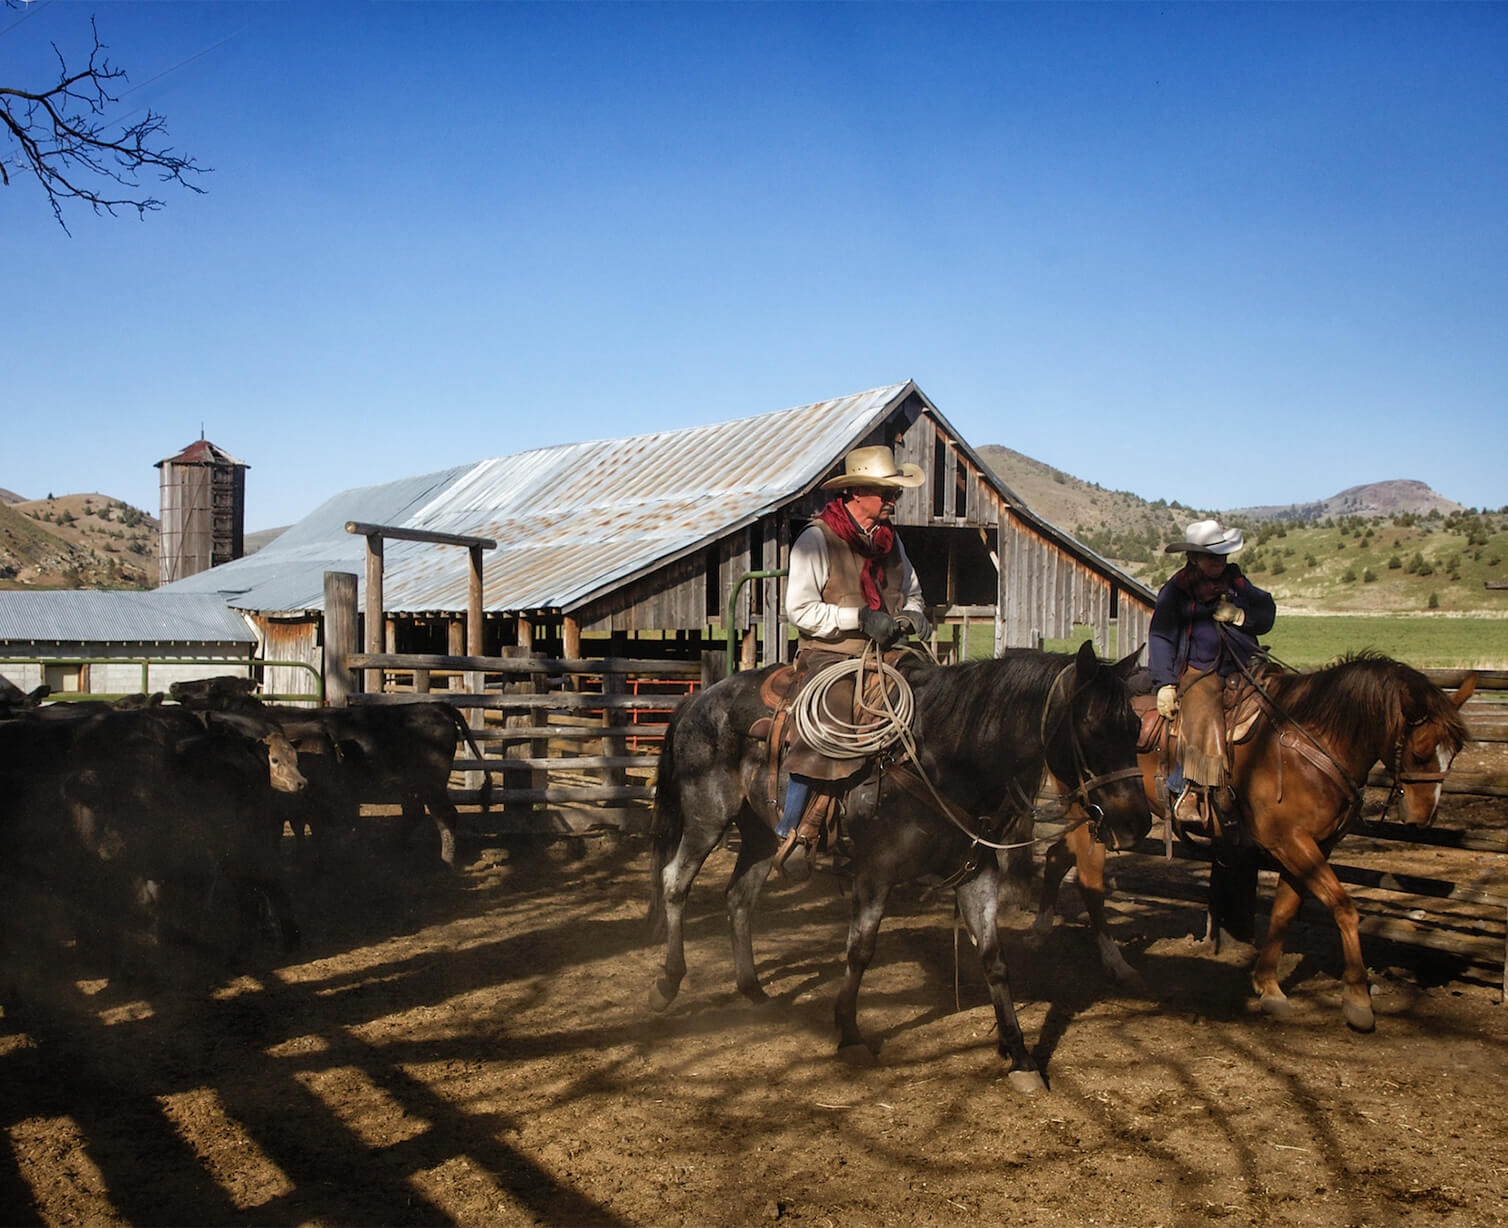 Horseback riders in front of barn and cattle